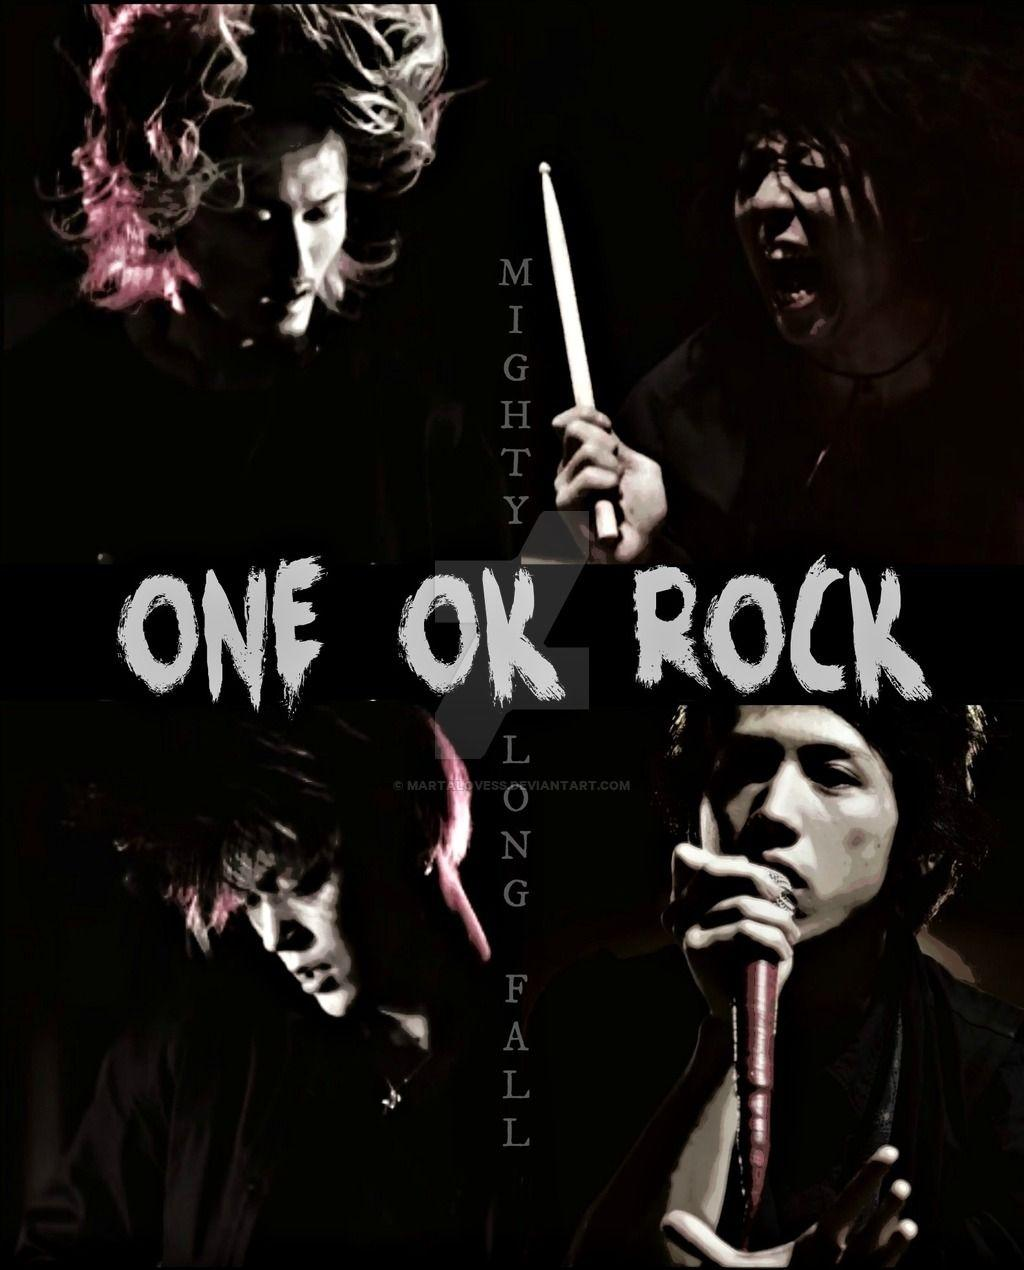 group pictures on ONE-OK-ROCK - DeviantArt